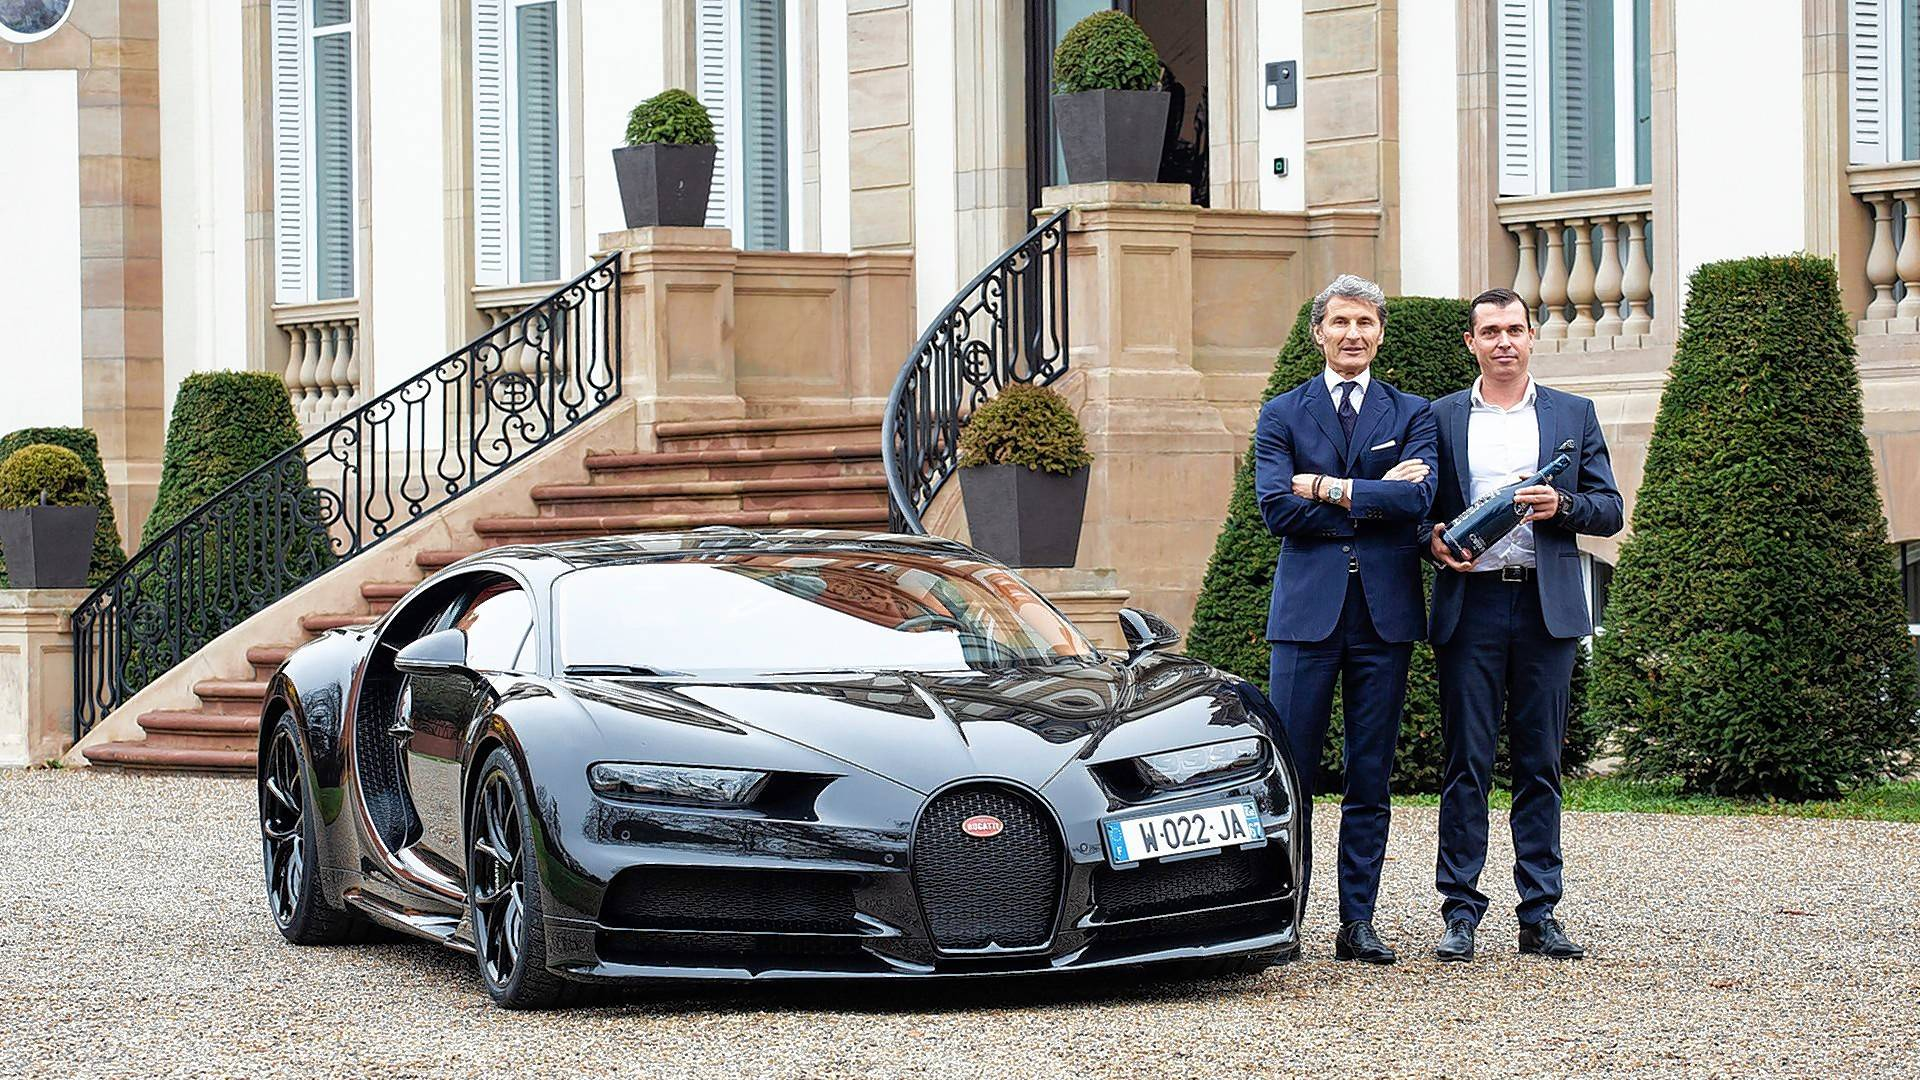 Bugatti CEO Stephan Winkelmann, left, and Champagne Carbon CEO Alexandre Mea shake hands after signing a contract at the Bugatti headquarters in France.